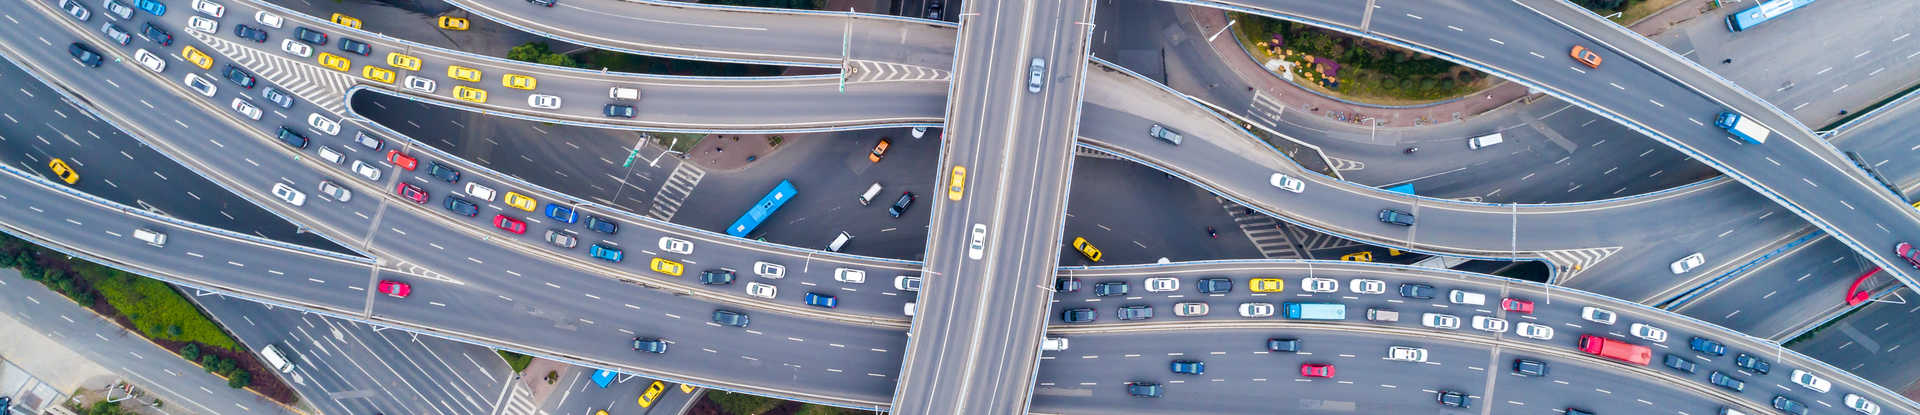 Aerial view of a freeway interchange with many cars on the road